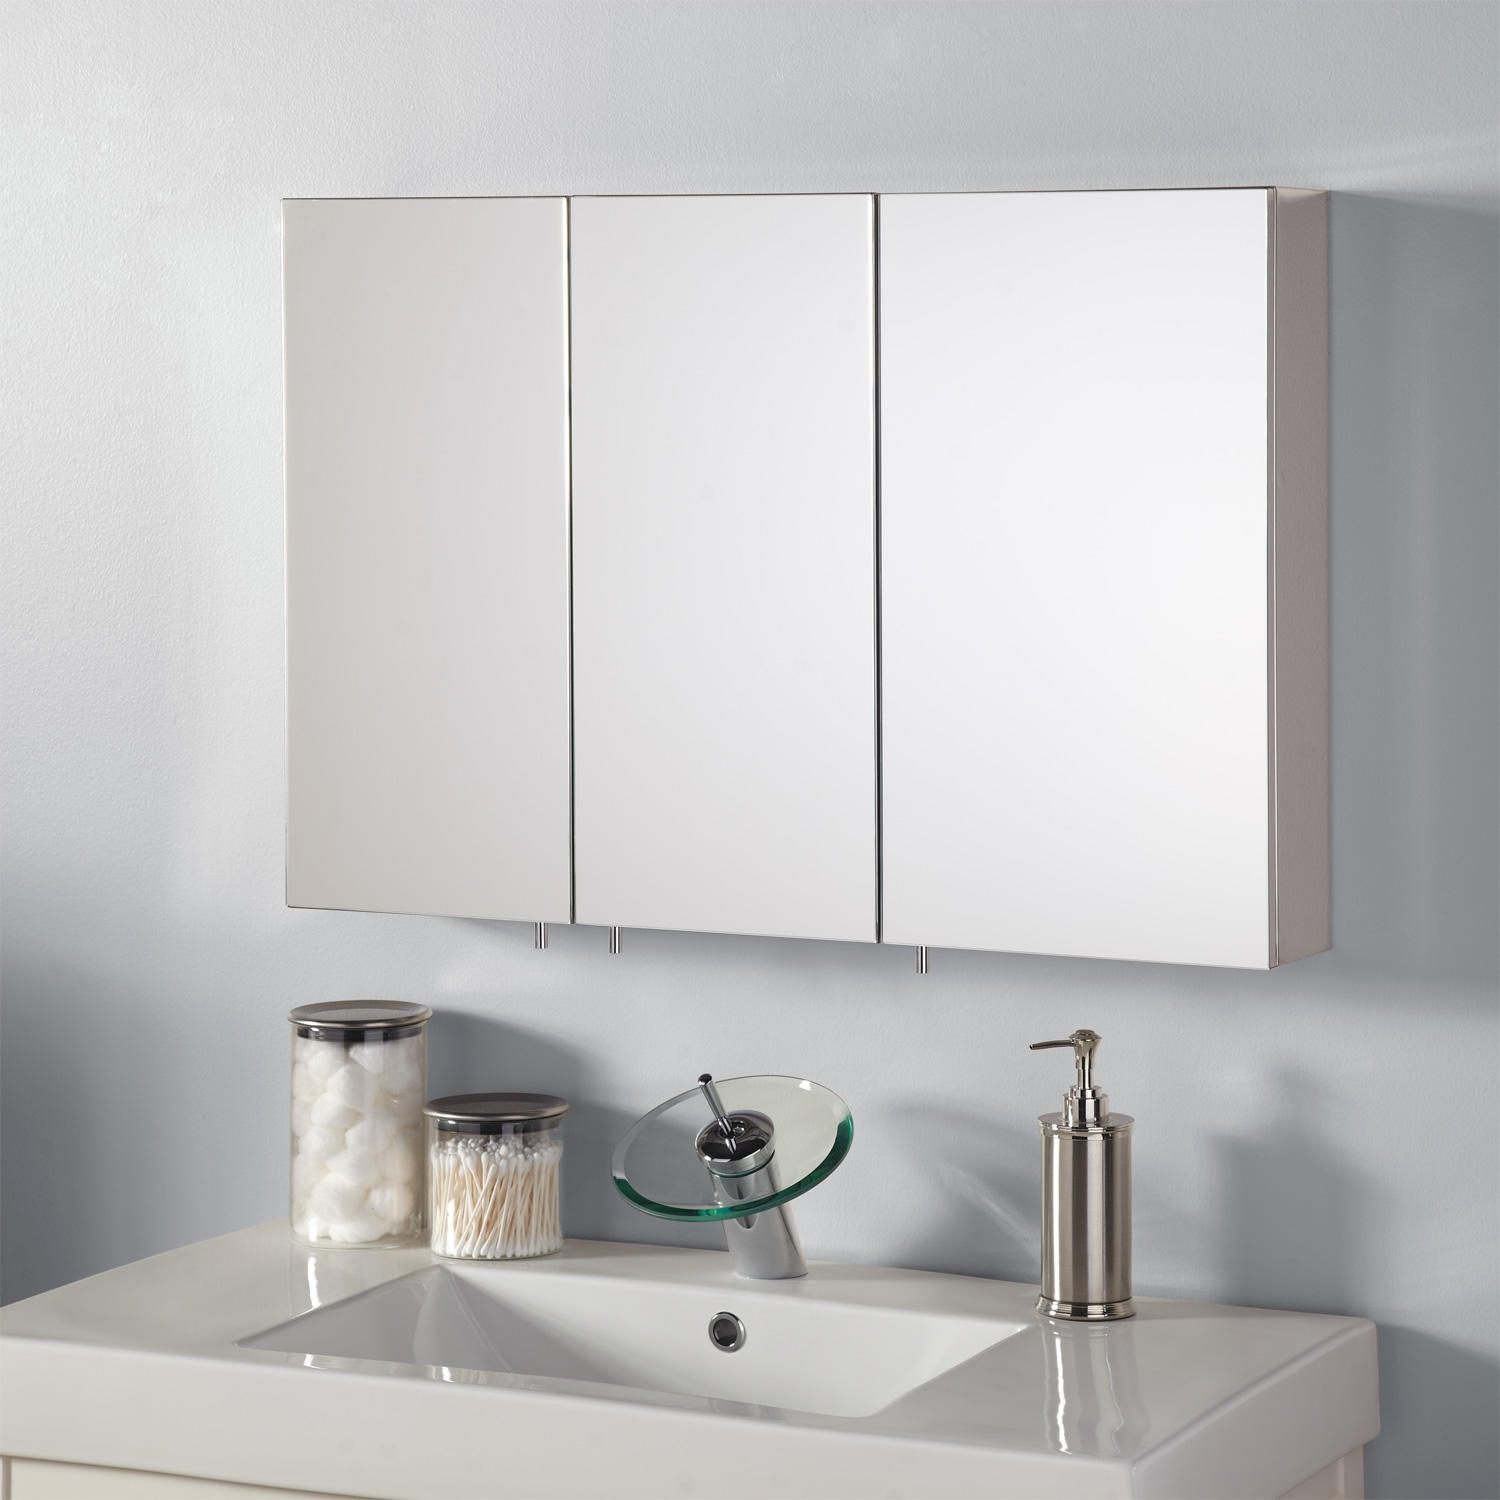 Permalink to Sliding Door Bathroom Cabinet Stainless Steel